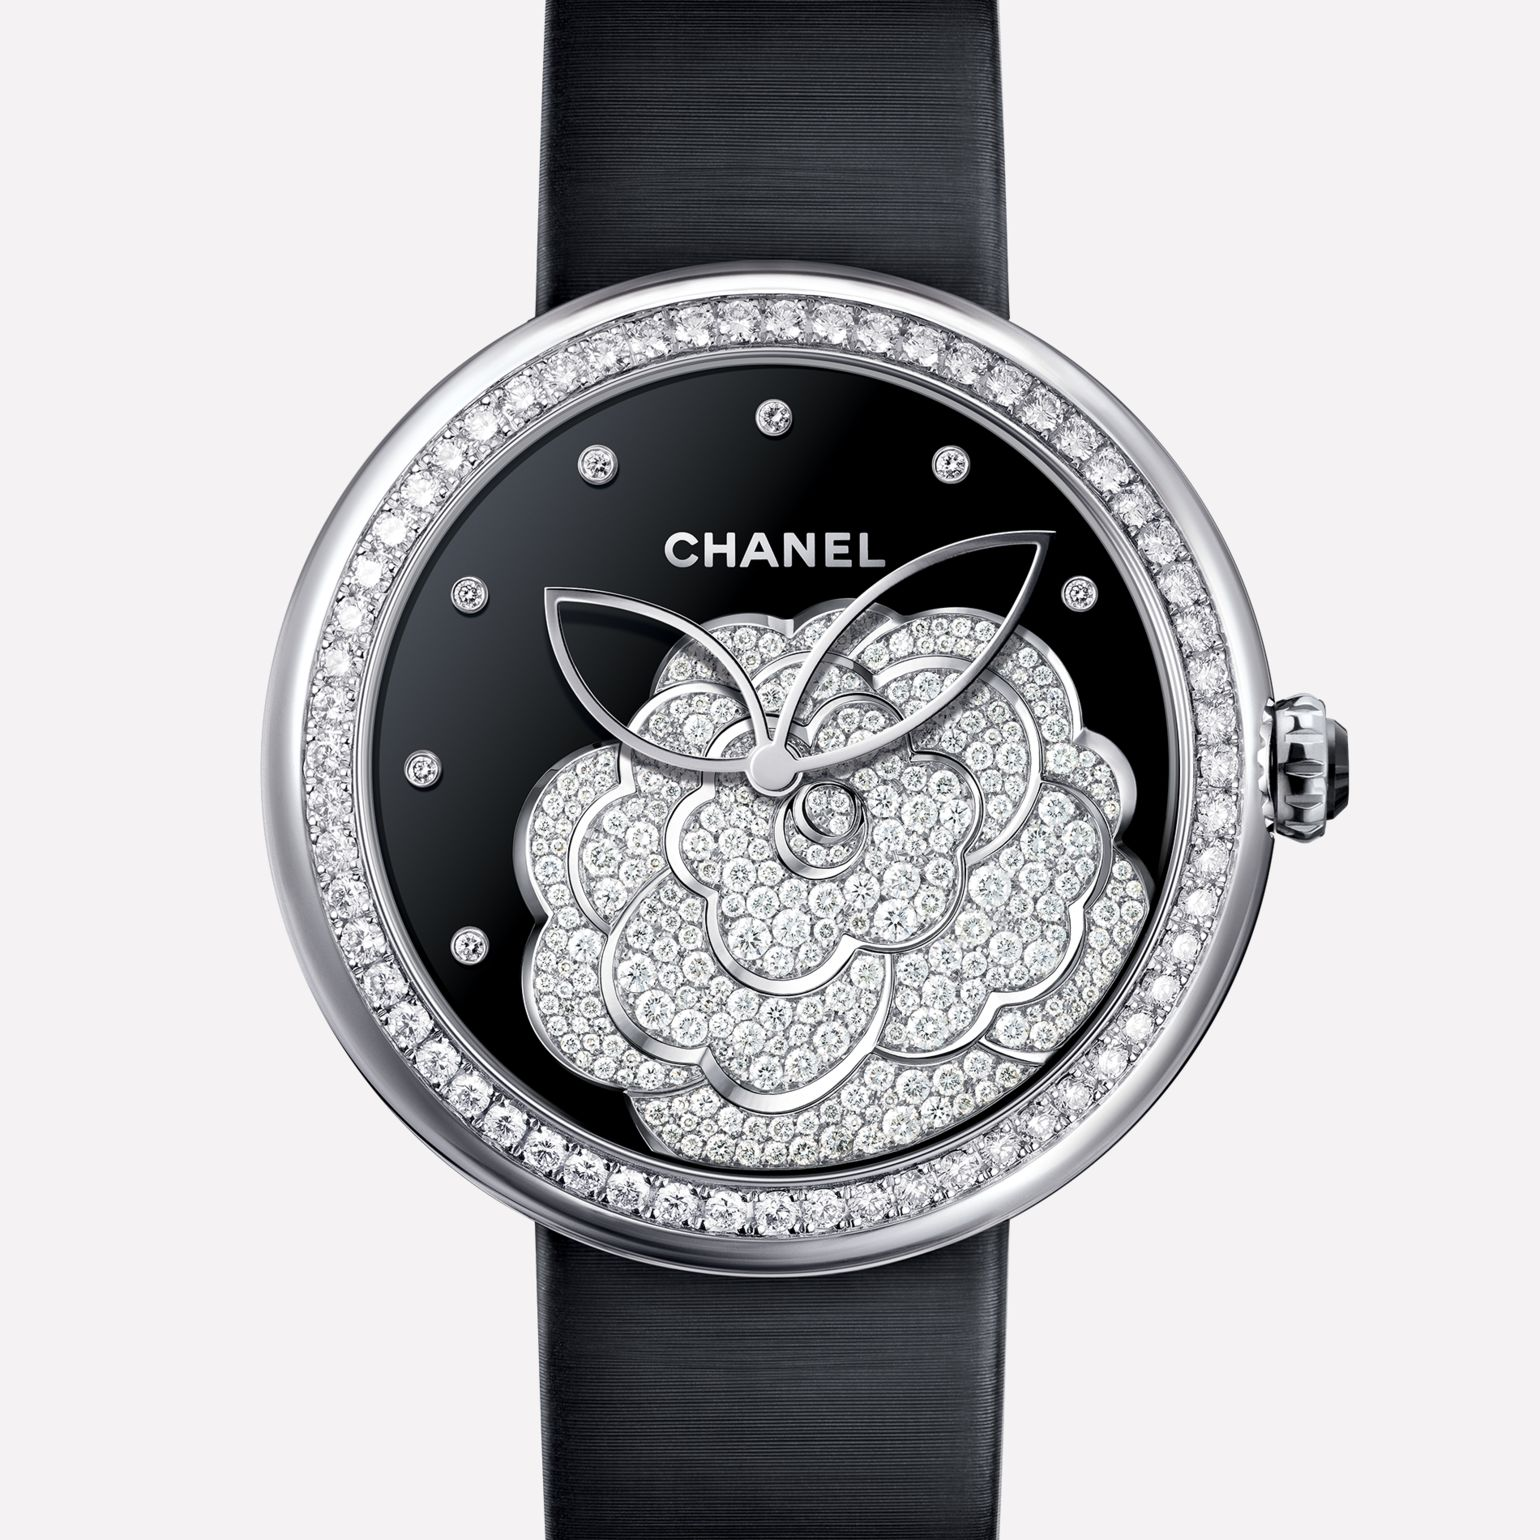 Mademoiselle Privé Camellias set with diamonds, onyx dial, diamond indicators